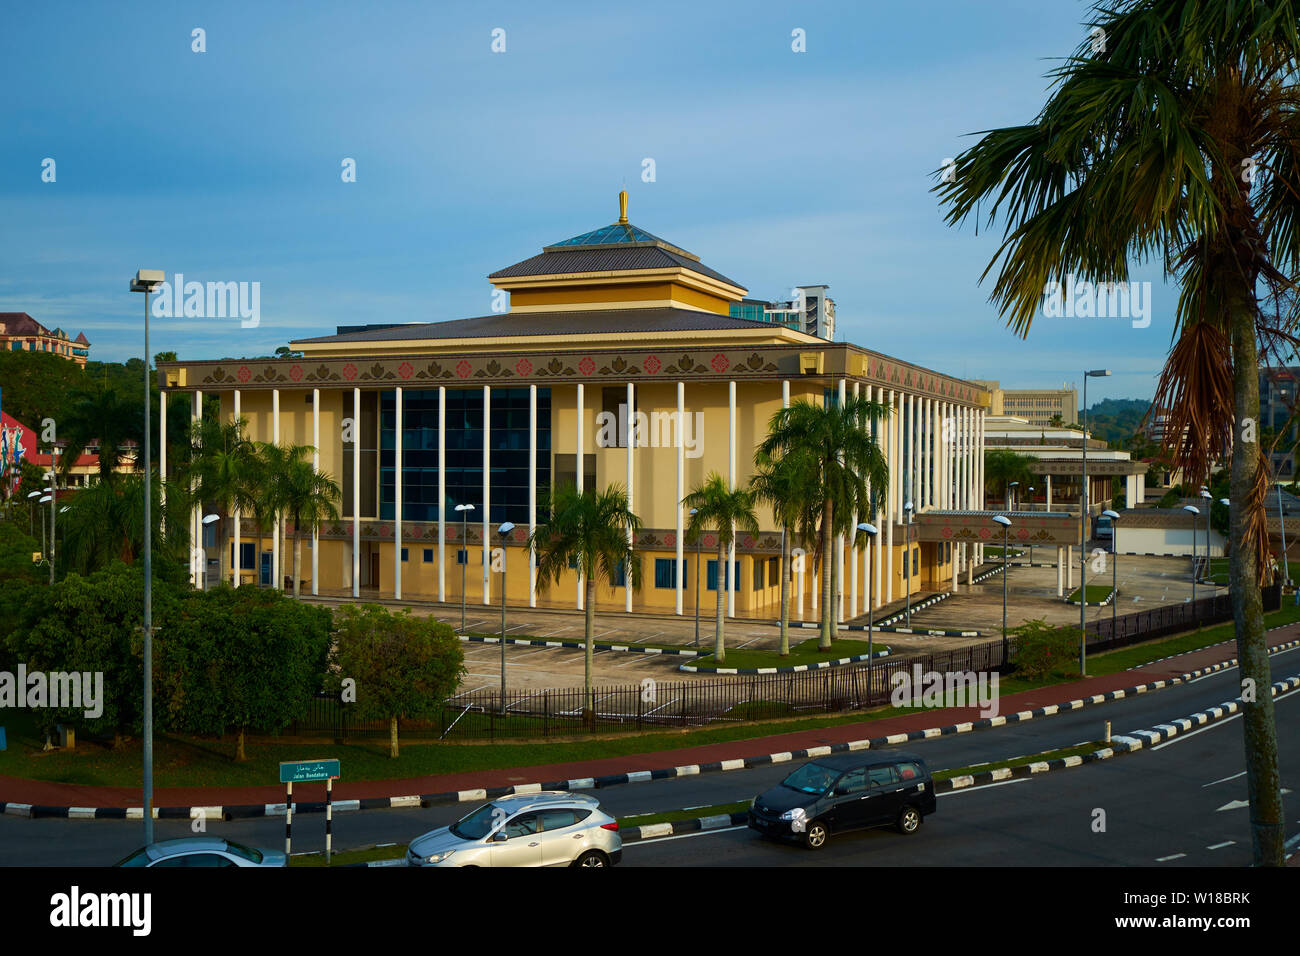 Exterior view of the Jabatan Adat Istiadat building in Bandar Seri Begawan, Brunei - Stock Image